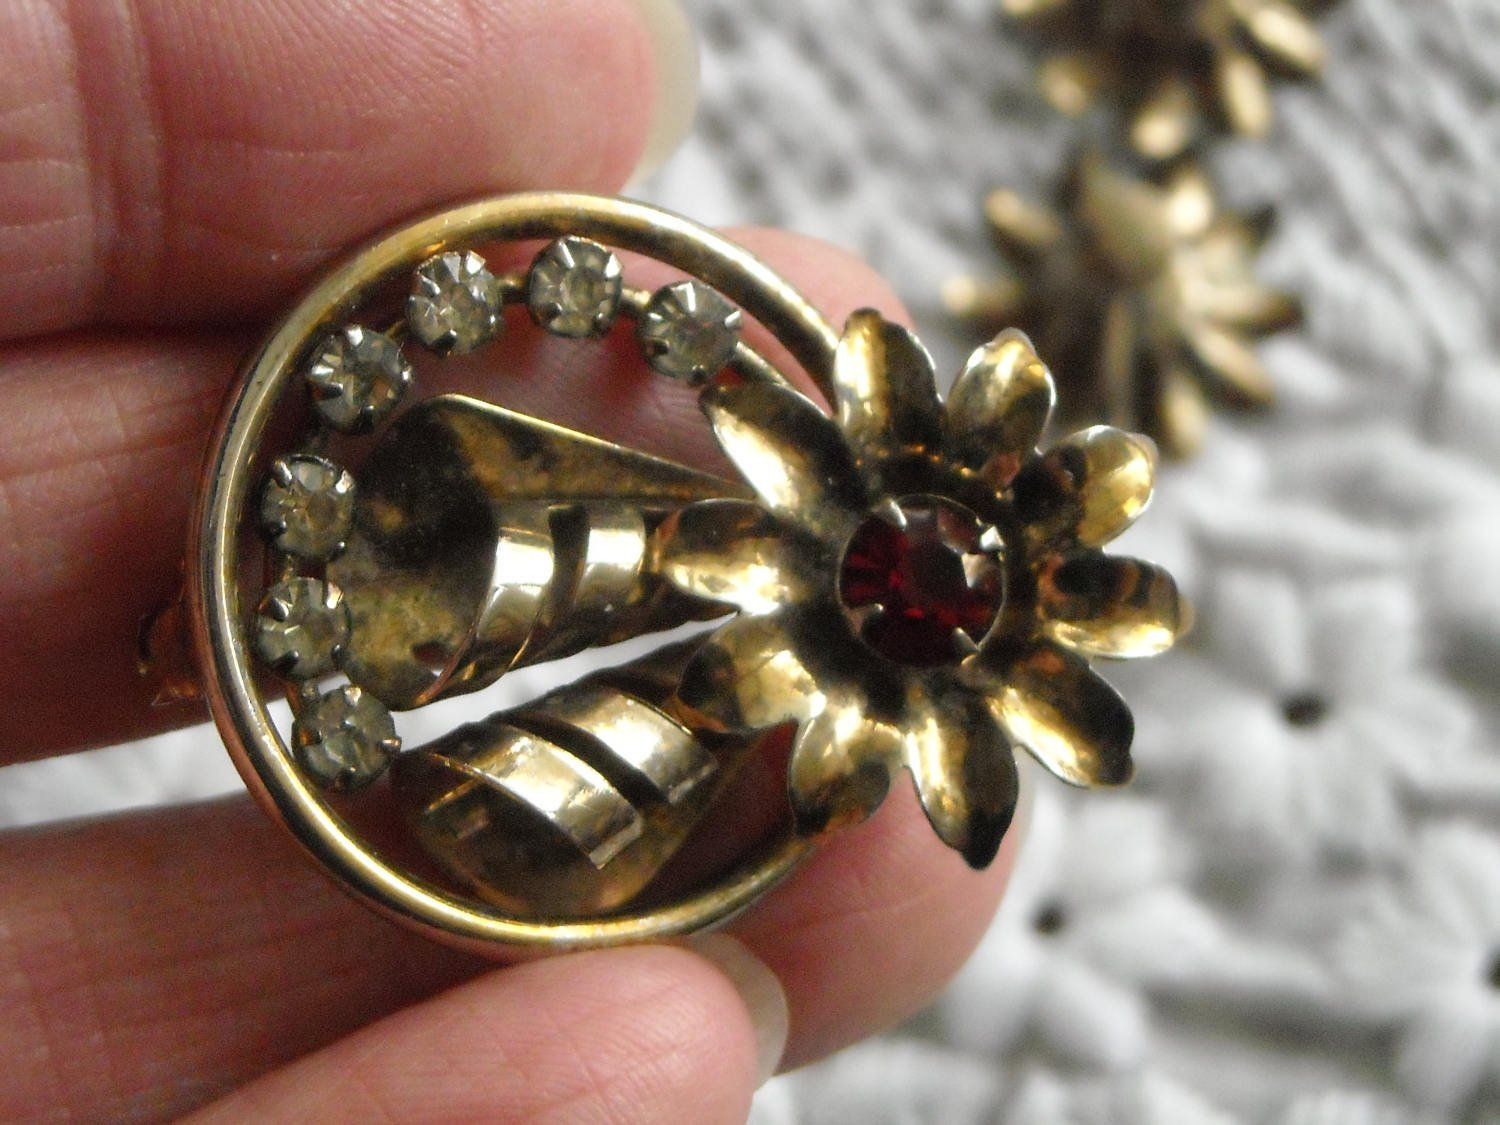 Vintage Gold Tone Flower Pendant Brooch & Matching Earrings Red & White Sets image 2